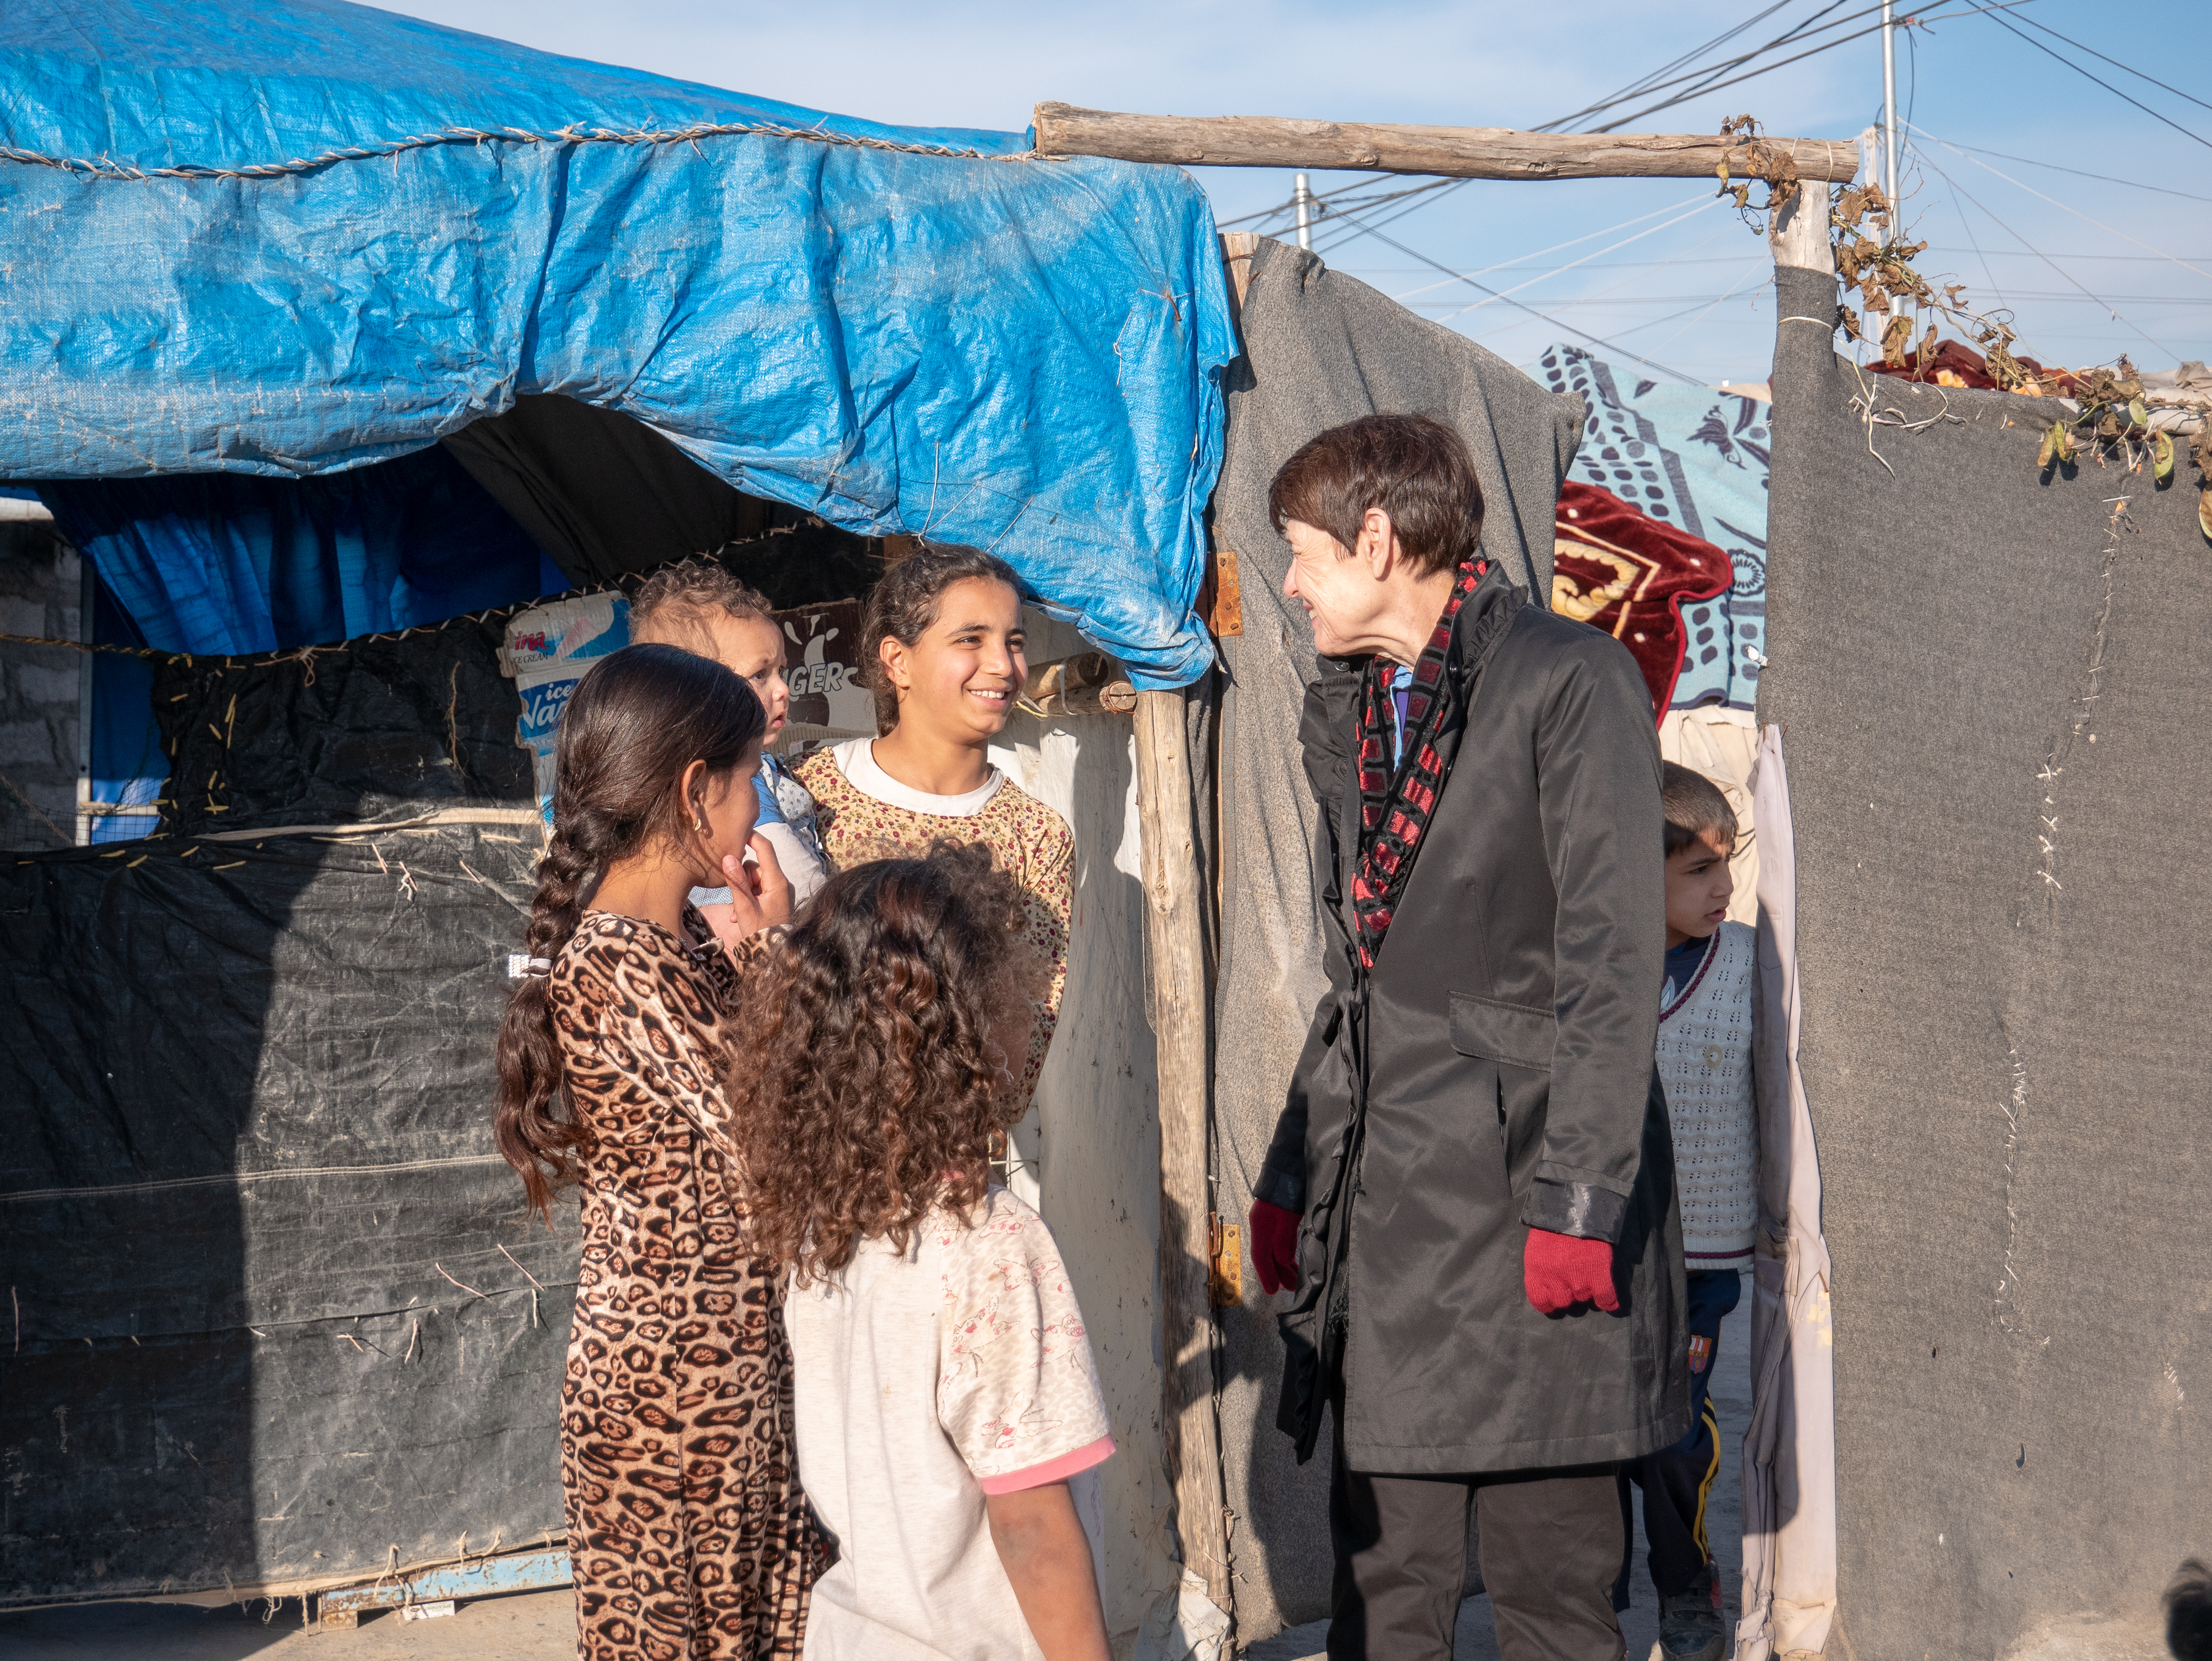 Sister Susan Bednar, right, visits with youth at the Ashti refugee camp near Erbil, Kurdistan, on Jan. 21, 2019. LDS Charities assisted in 750 tents in two refugee camps in the area.